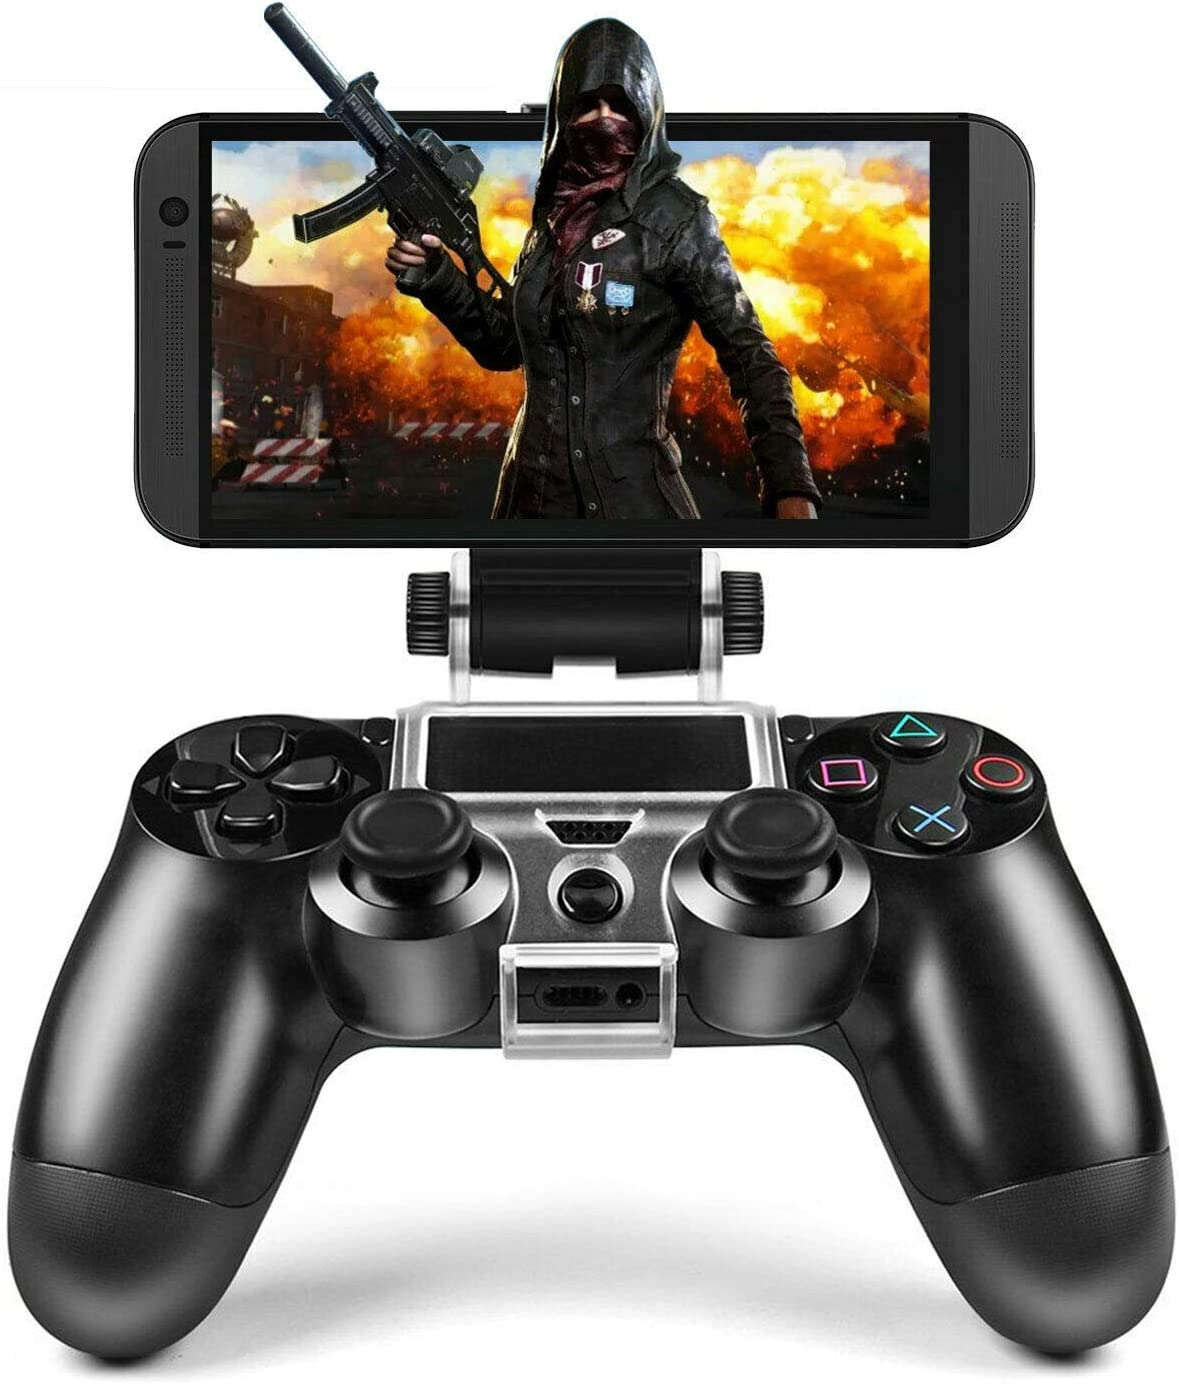 Black ZODRQ Wireless Bluetooth Receiver Mobile Gaming Controller Gamepad Joystick with Telescopic Holder for Android iOS PC Smart TV//TV Box